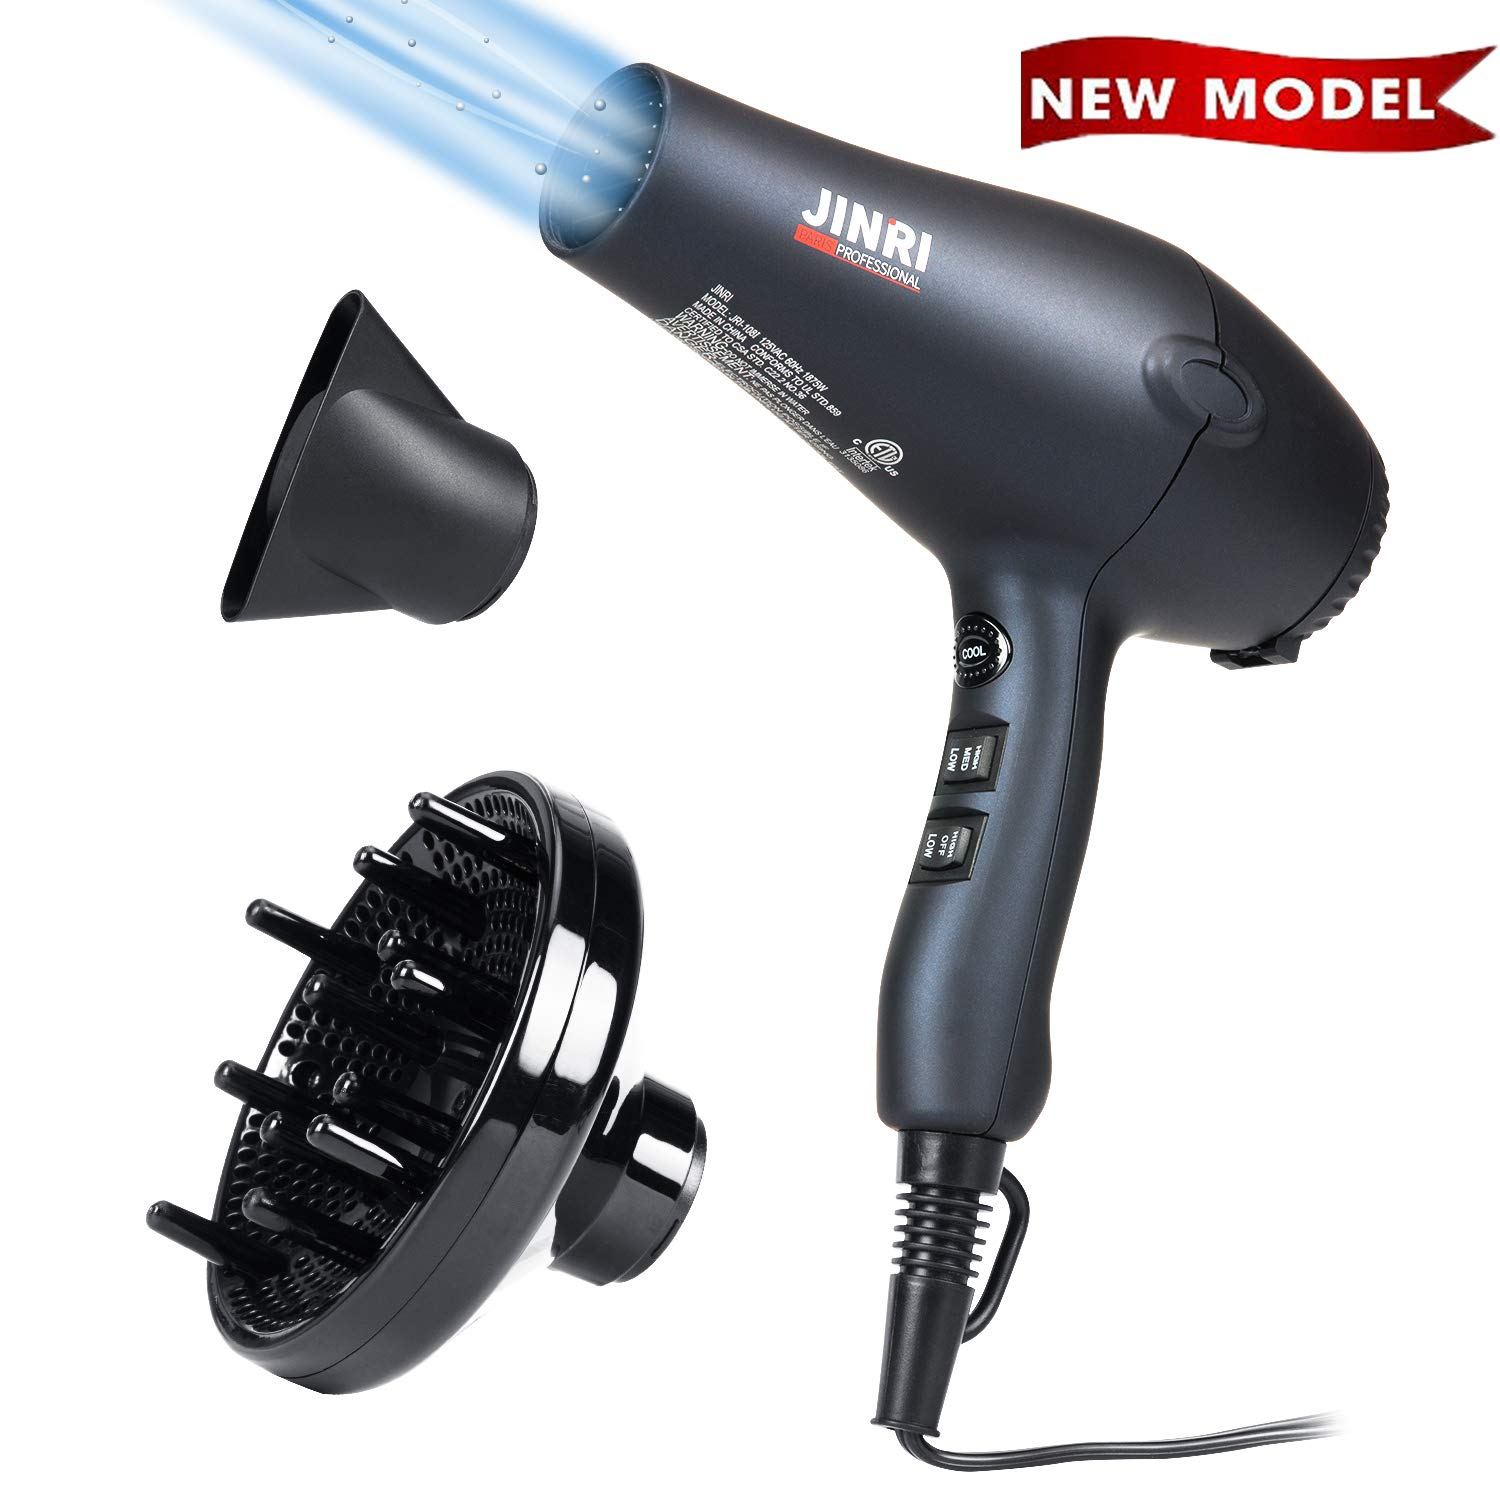 Hair Dryer JINRI 1875W Professional Negative Lonic Salon Hair Blow Dryer DC Motor Light Weight Low Noise Hair Dryers with Diffuser Concentrator,Black ETL Certified